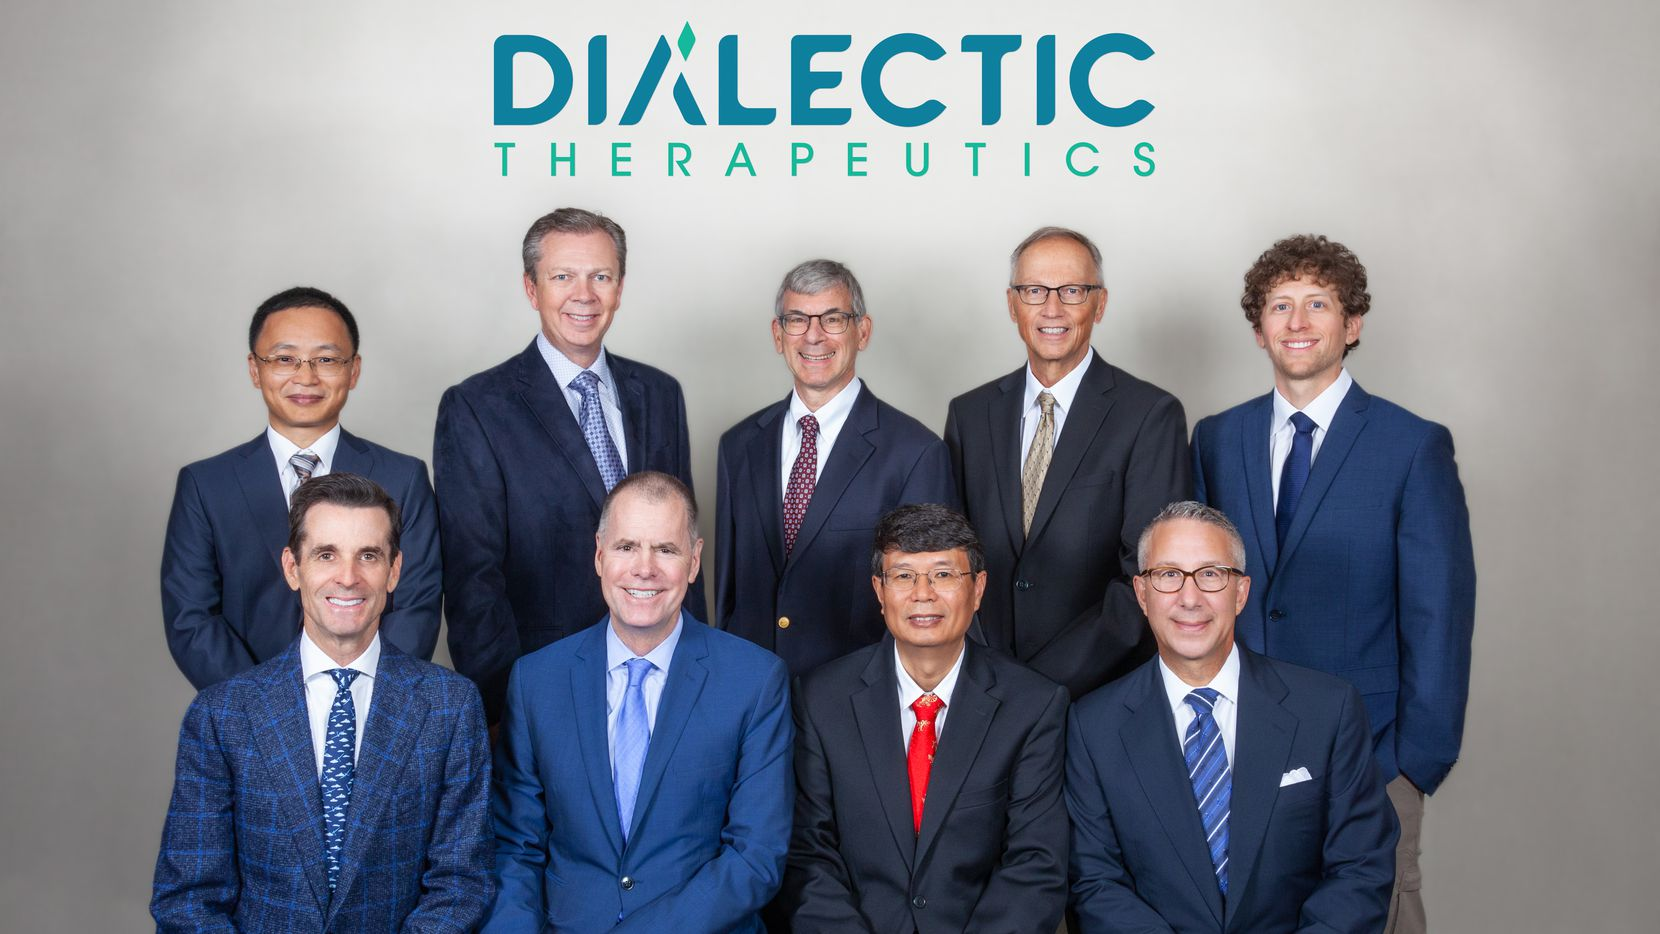 The founders and leadership team of Dallas-based Dialectic Therapeutics.